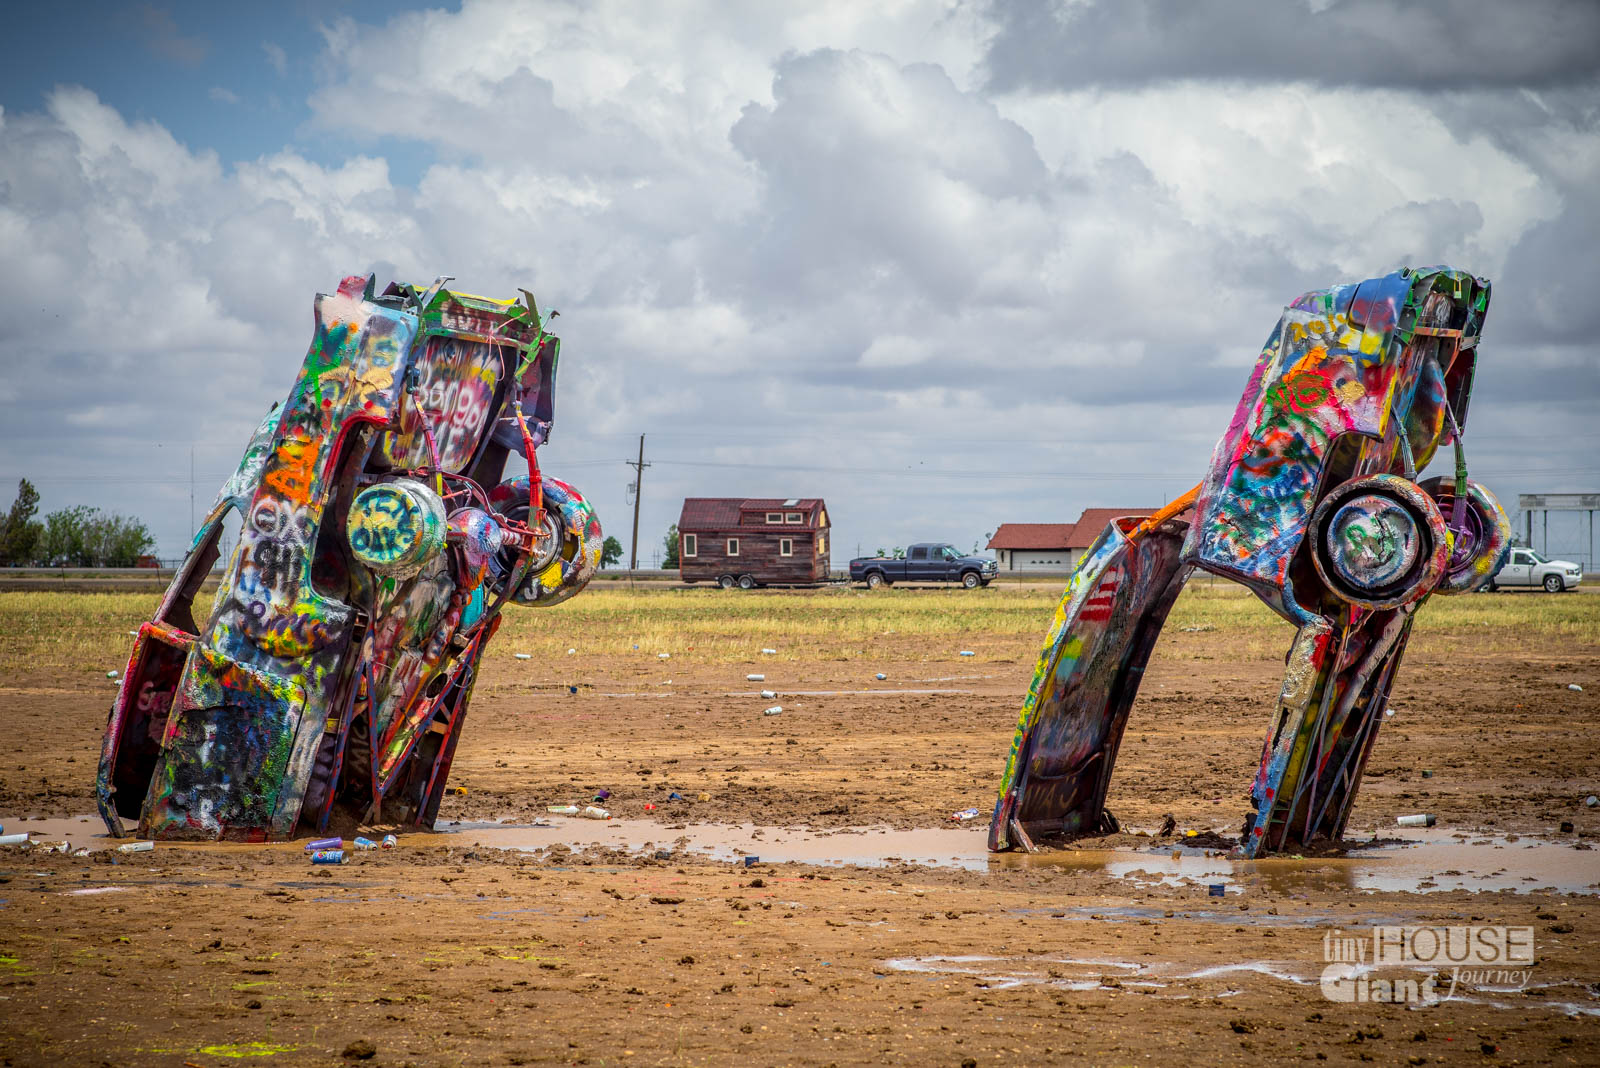 THGJ @ Cadillac Ranch in Texas